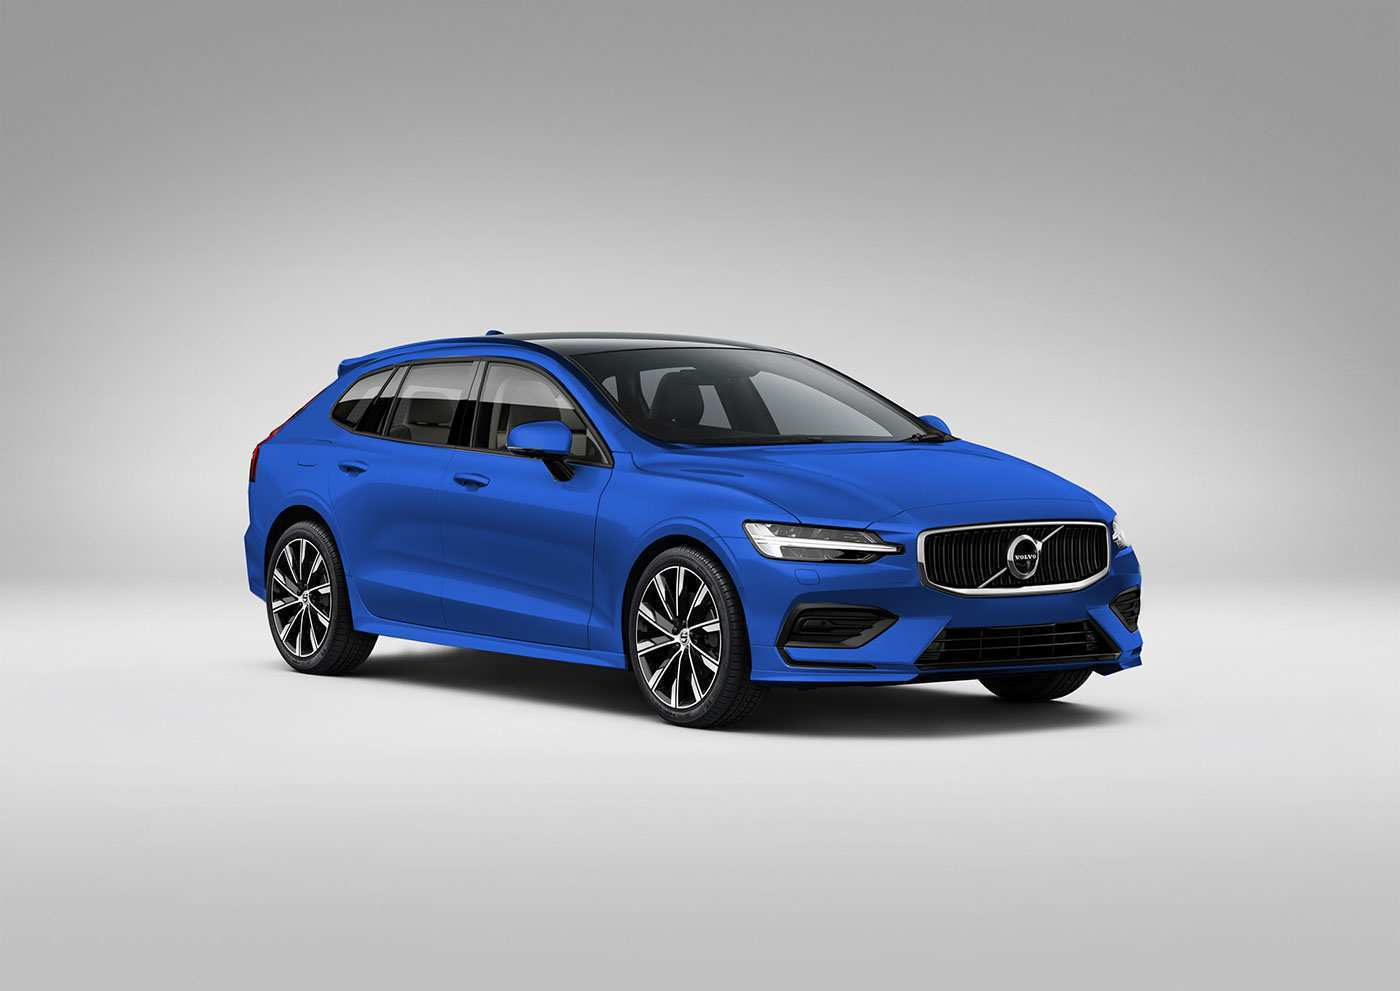 89 New V40 Volvo 2019 Price and Review with V40 Volvo 2019